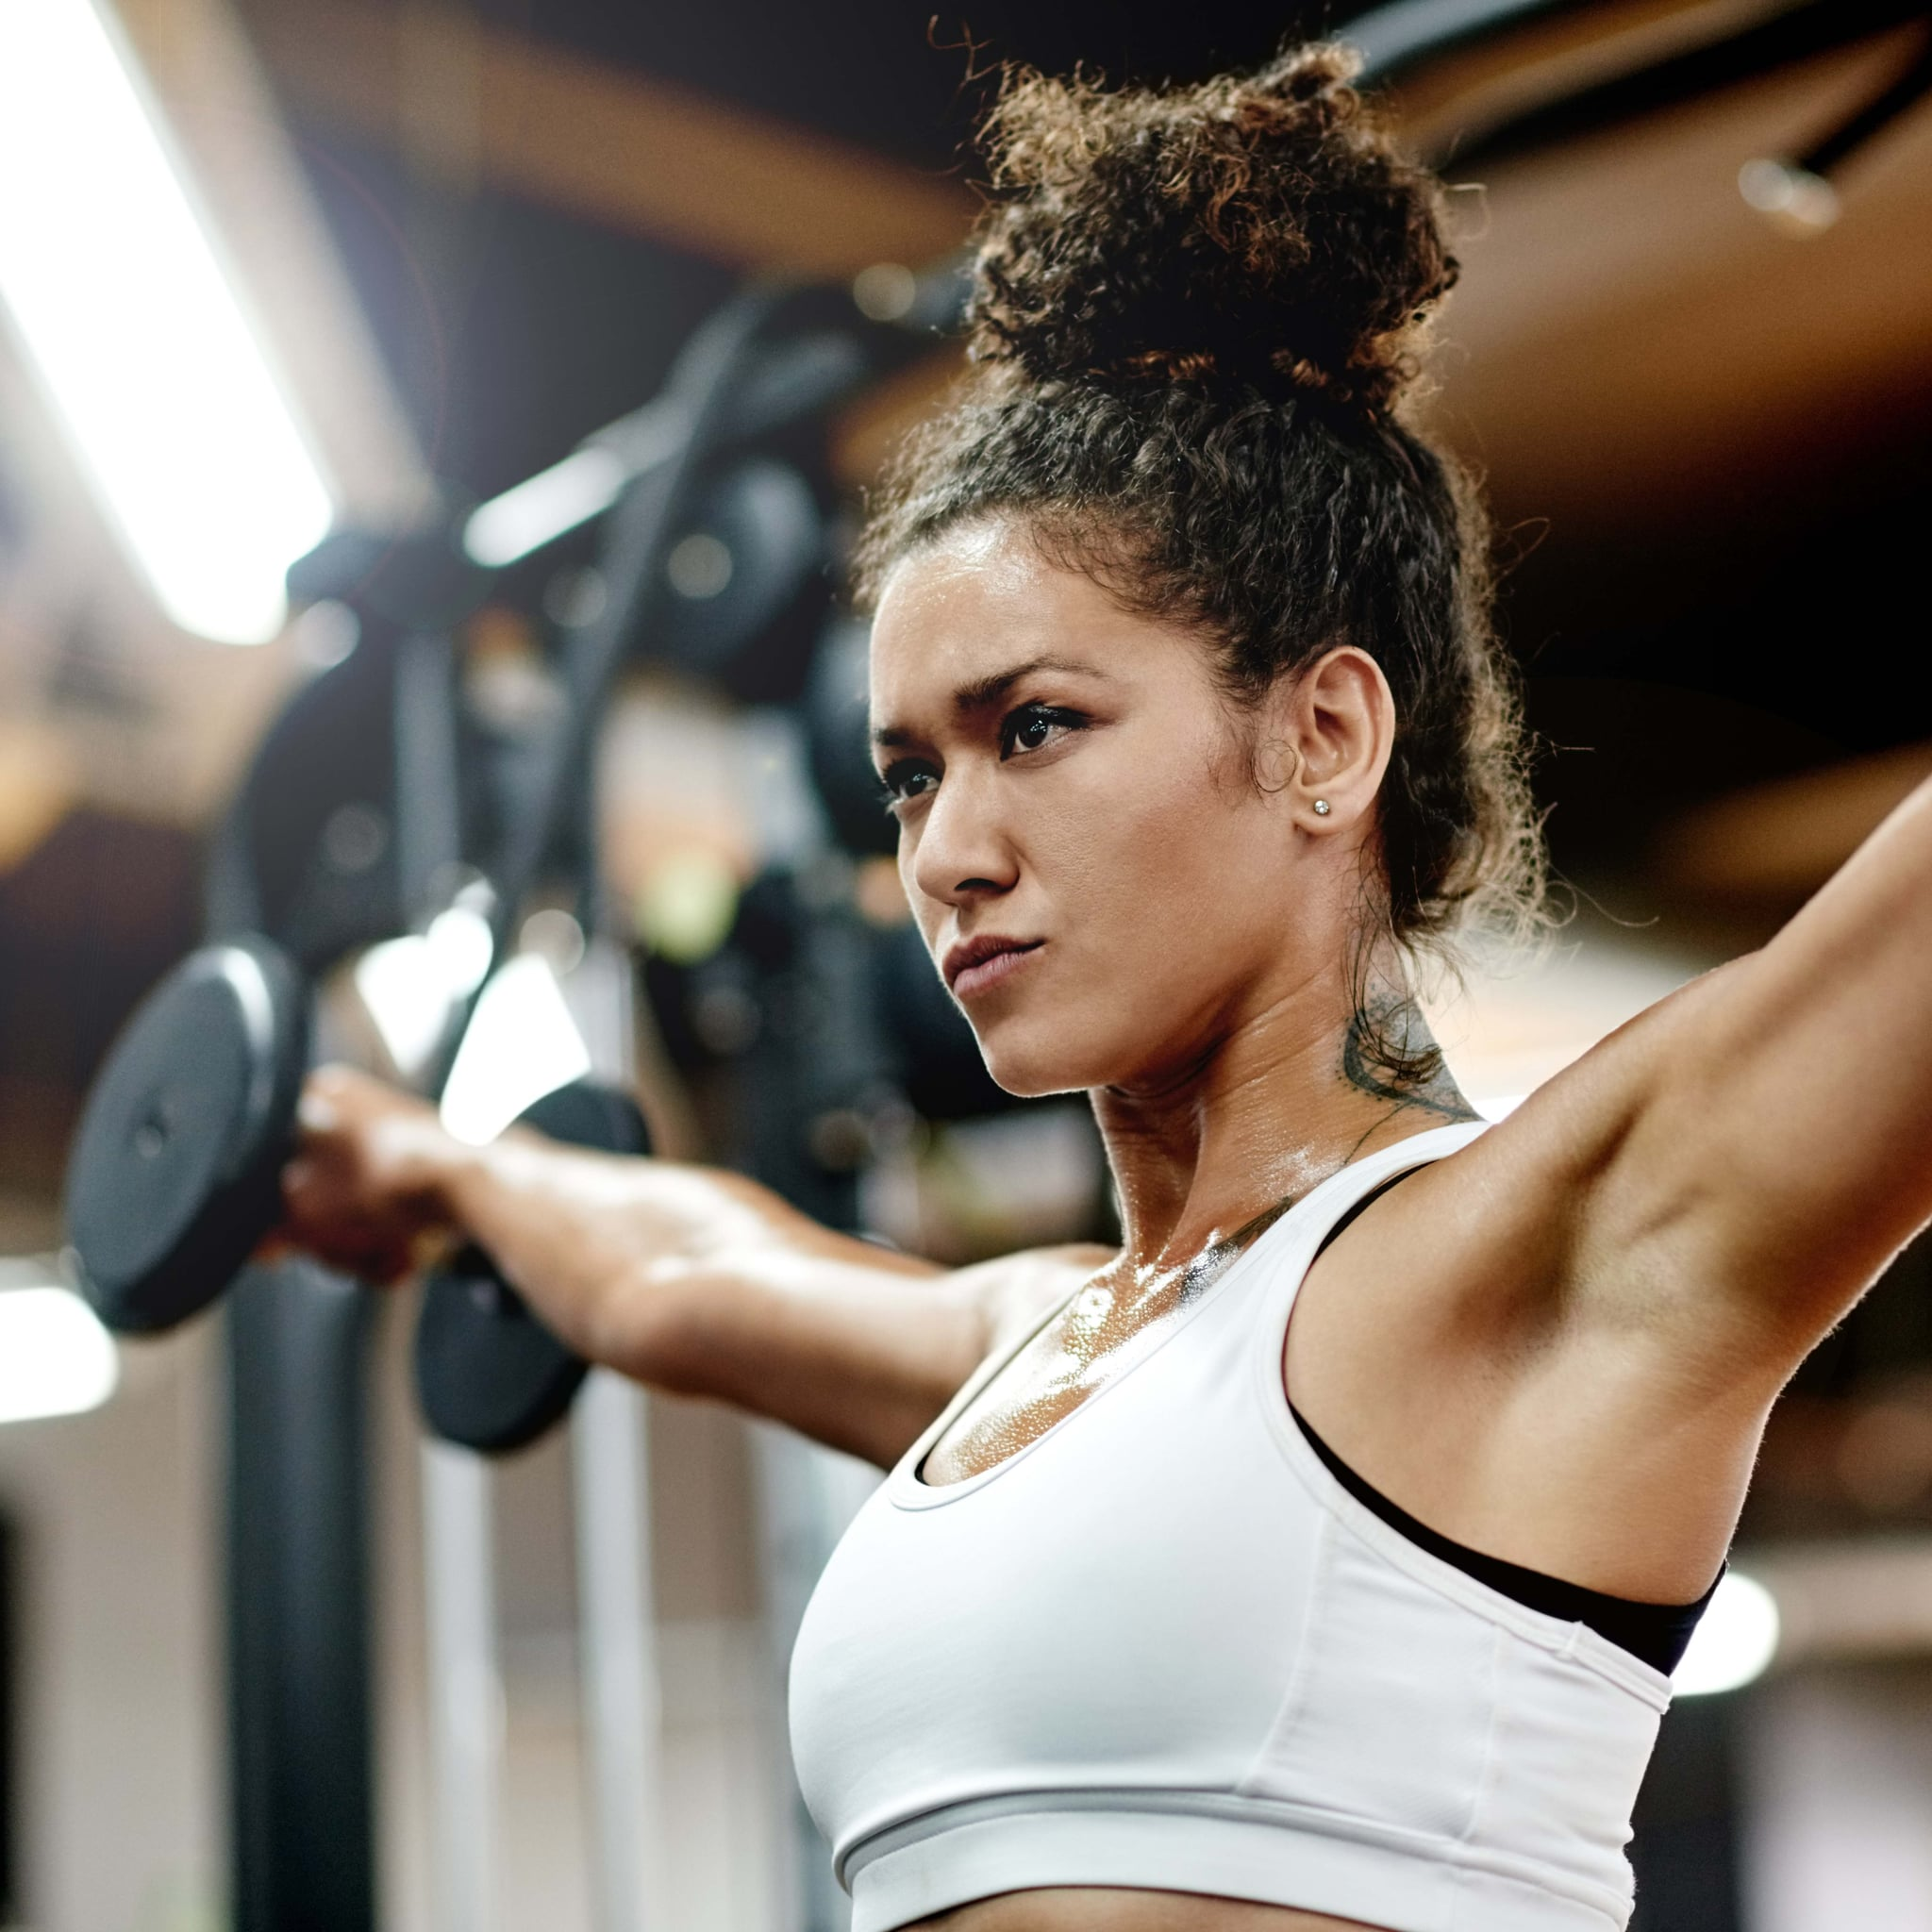 Why Women Work Out Popsugar Fitness Women's health, part of the hearst uk wellbeing network women's health participates in various affiliate marketing programs, which means we may get paid commissions on editorially chosen products purchased through our links to retailer sites. why women work out popsugar fitness